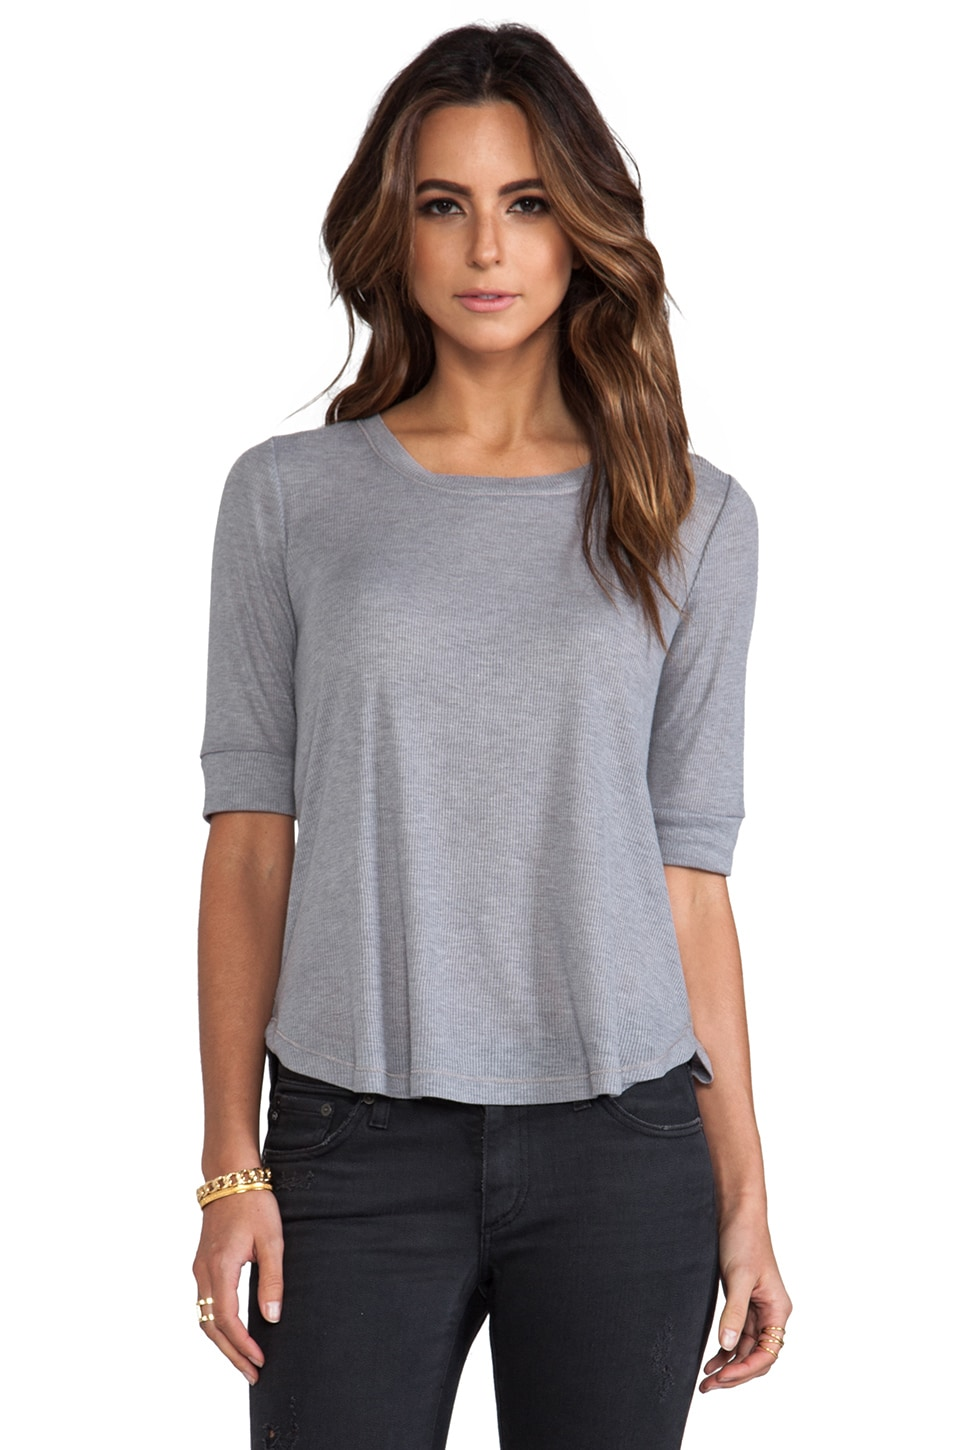 Splendid Feather Rib Top in Heather Grey